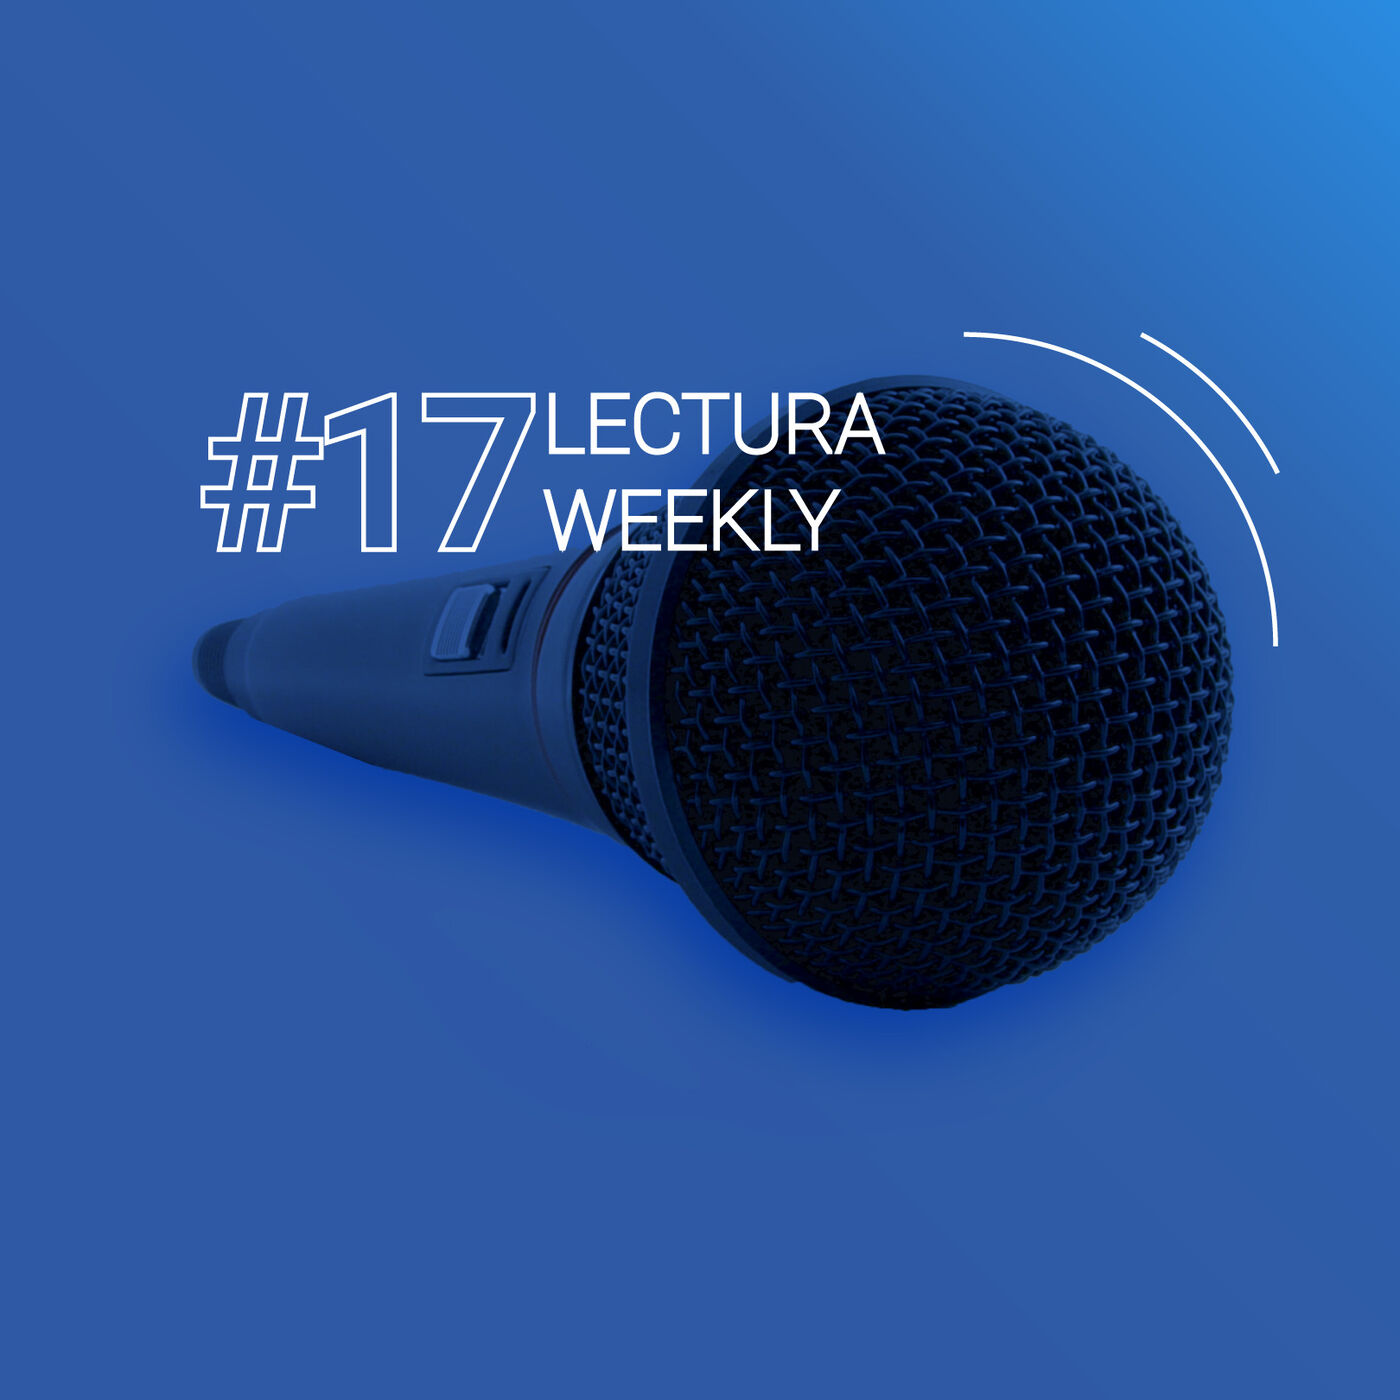 Lectura Weekly Podcasts: Week 17